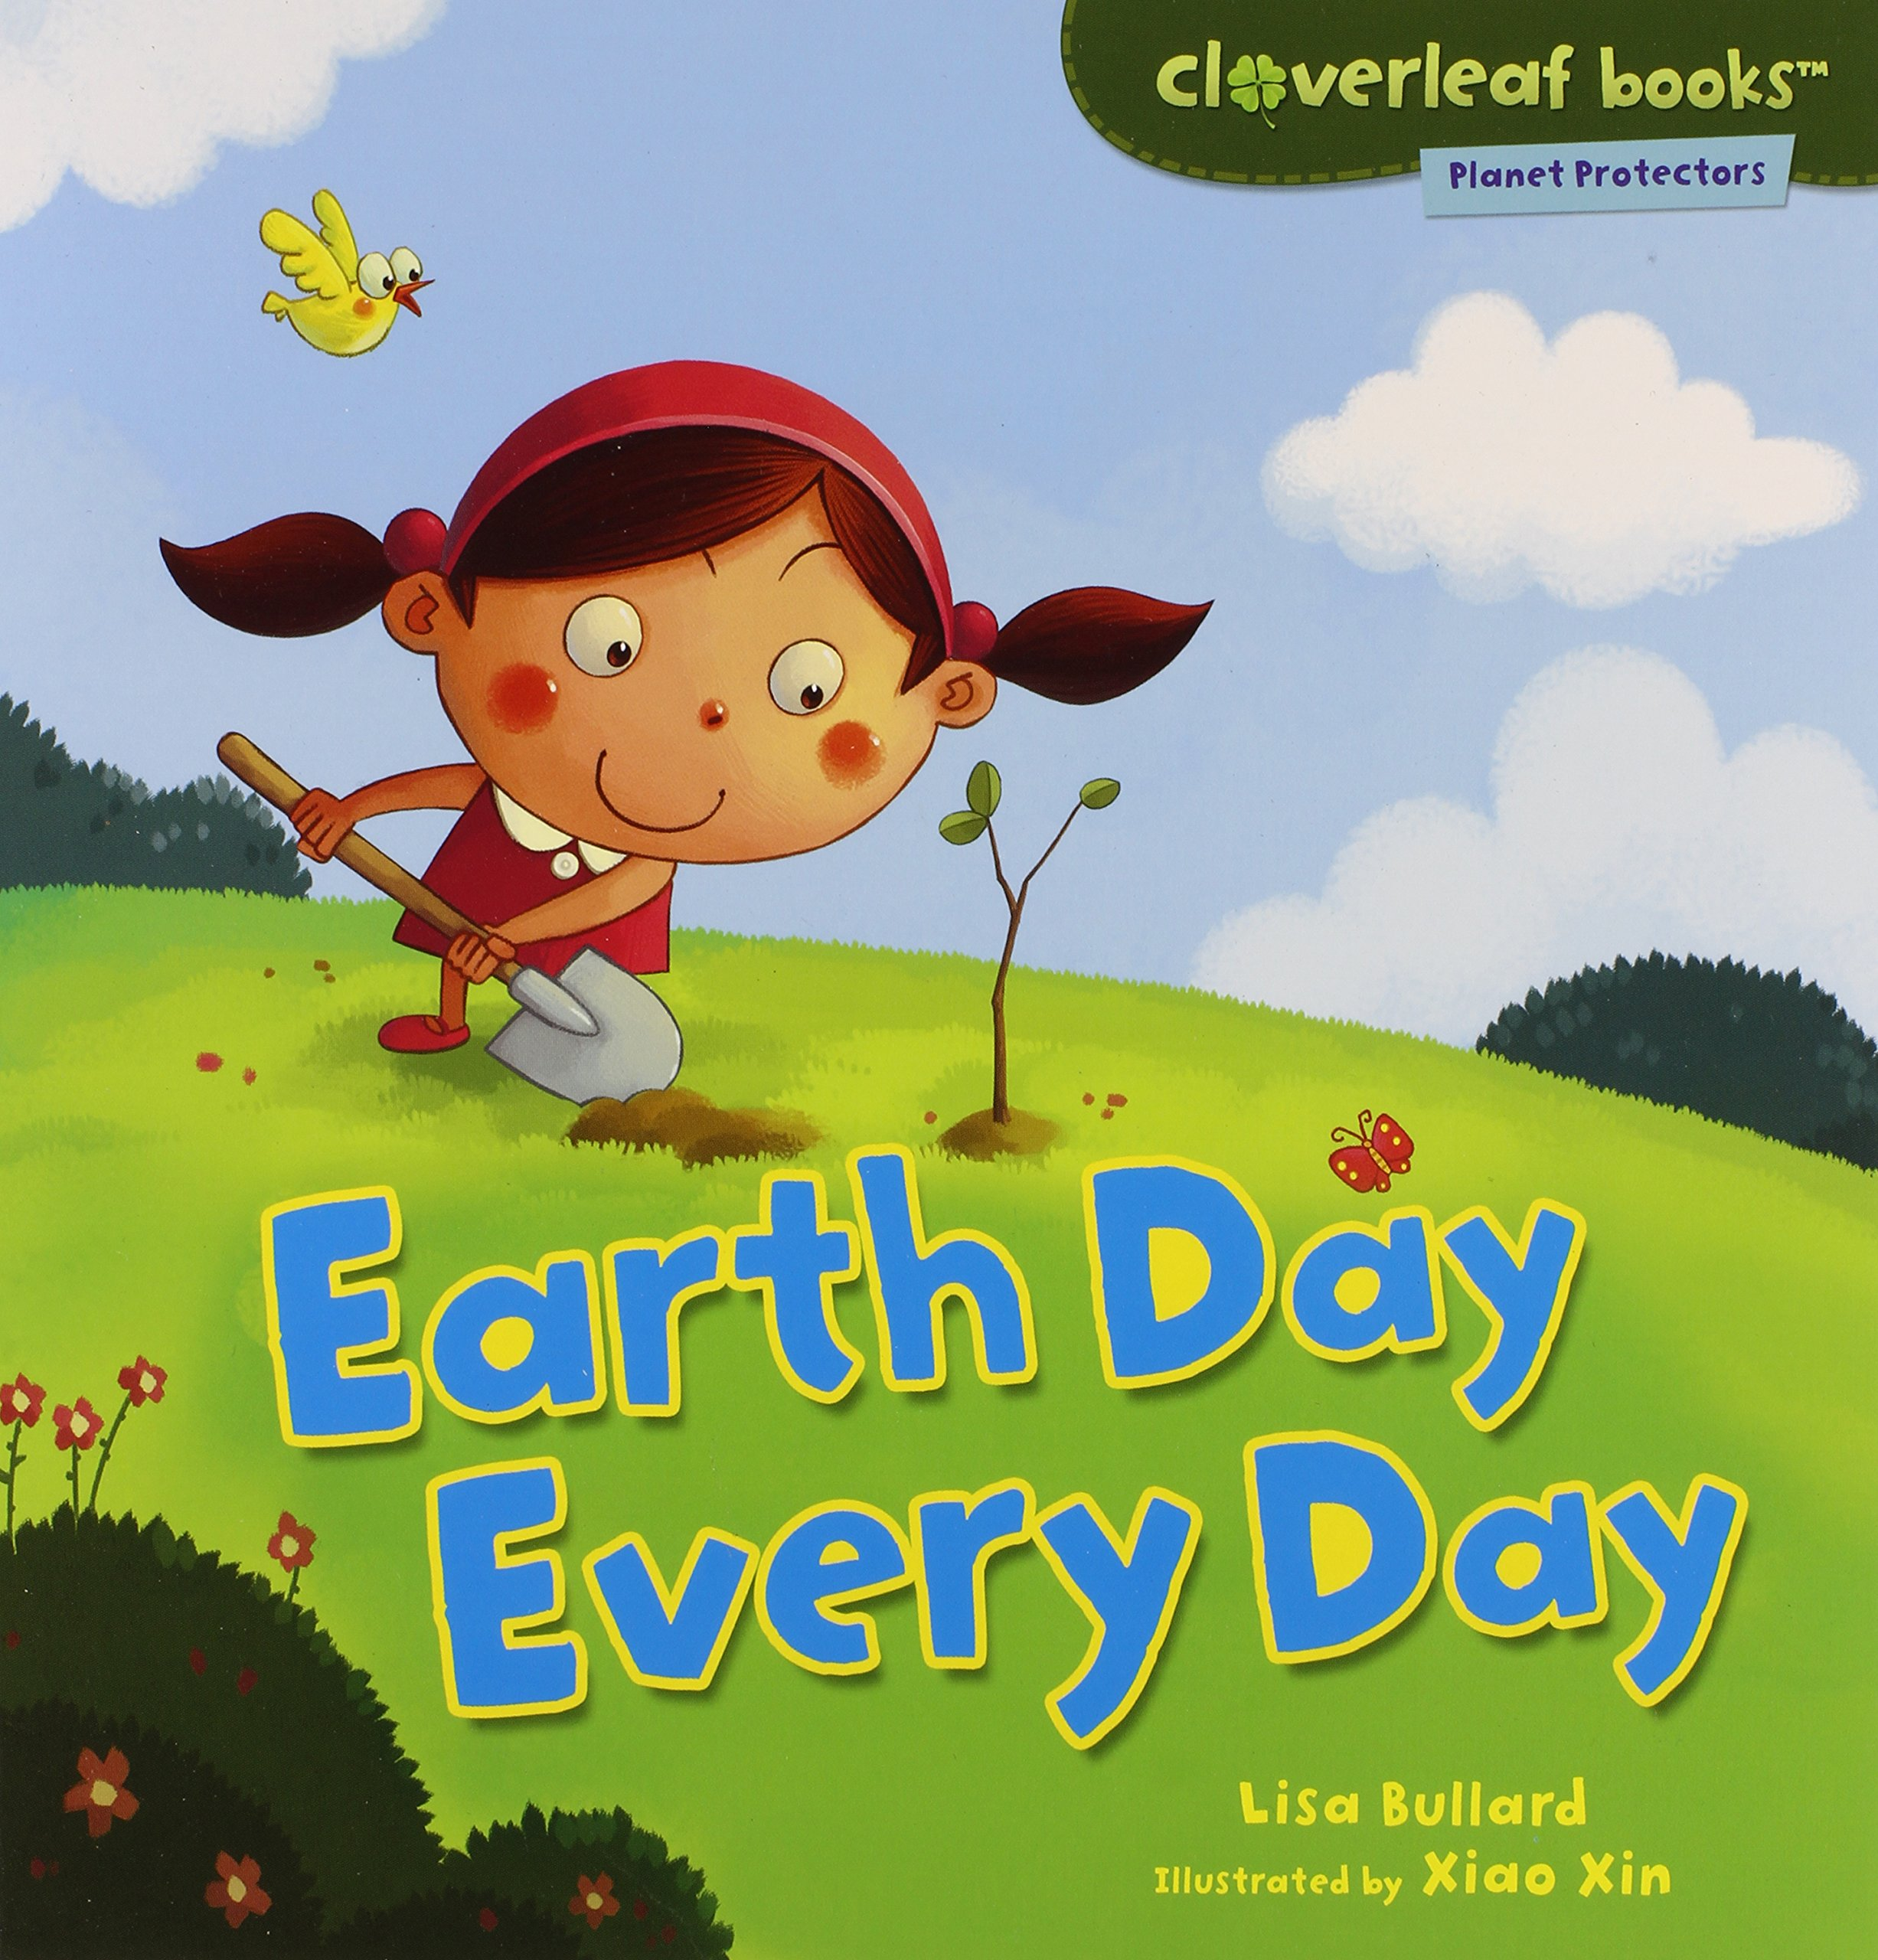 Earth day every day cloverleaf books planet protectors lisa earth day every day cloverleaf books planet protectors lisa bullard xin zheng 9780761385127 amazon books yelopaper Choice Image